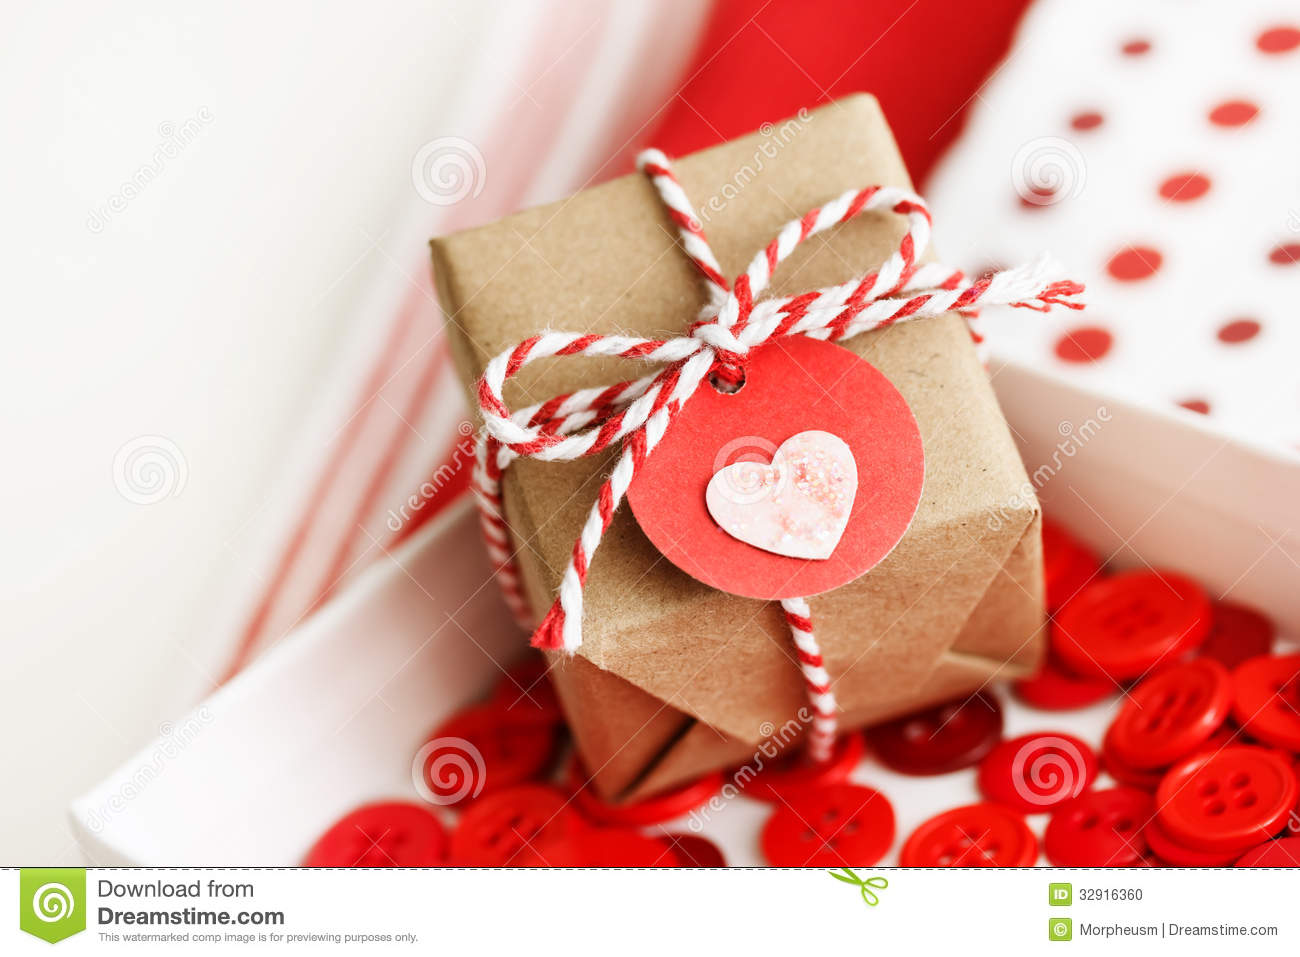 Handmade Small Gift Box With Heart Stock Photo Image Of Christmas